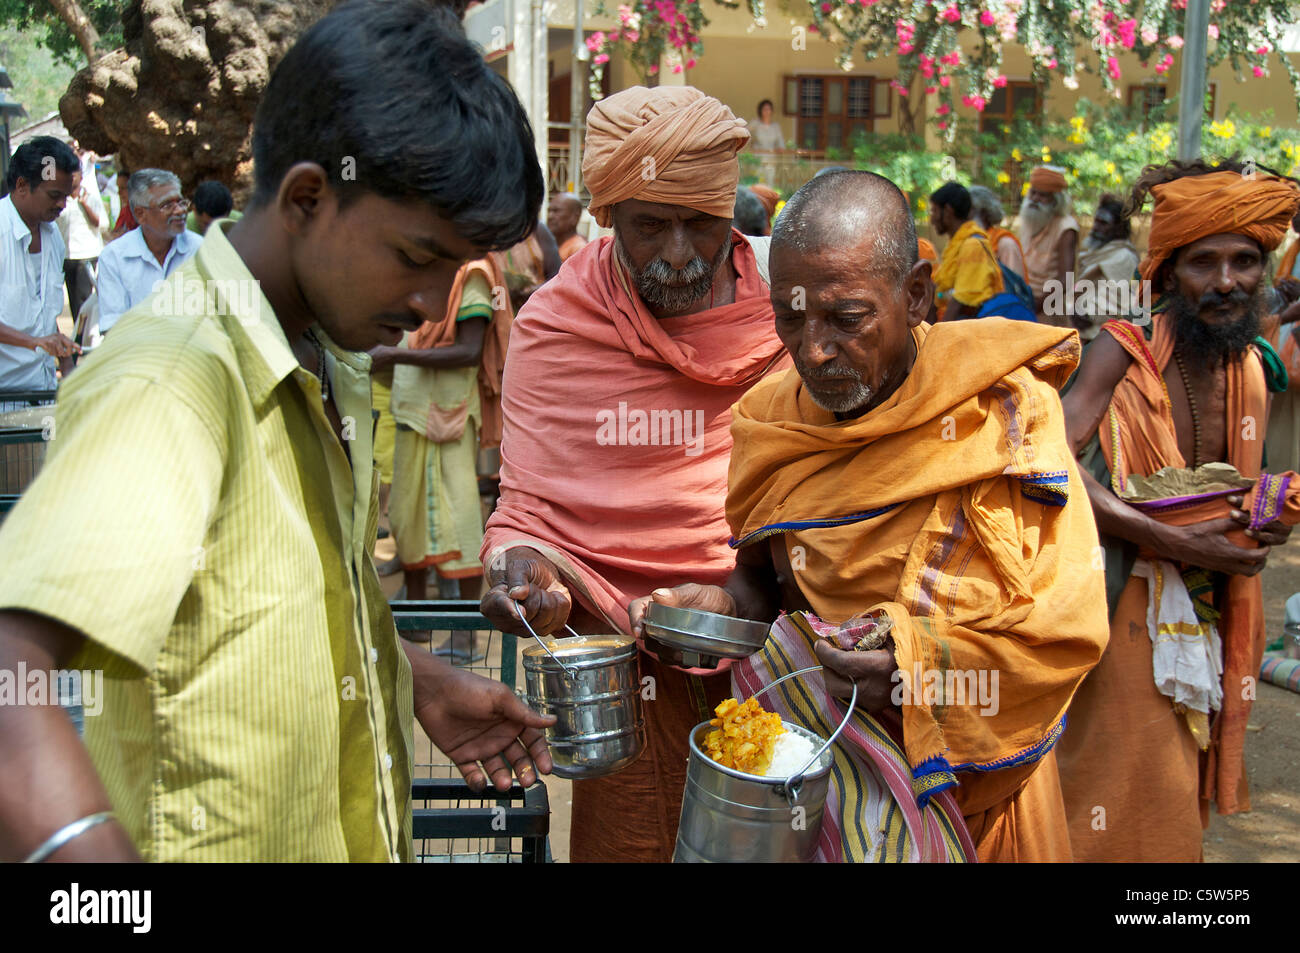 Sadu being served food Sri Ramana Ashram Tiruvannamalai Tamil Nadu South India - Stock Image